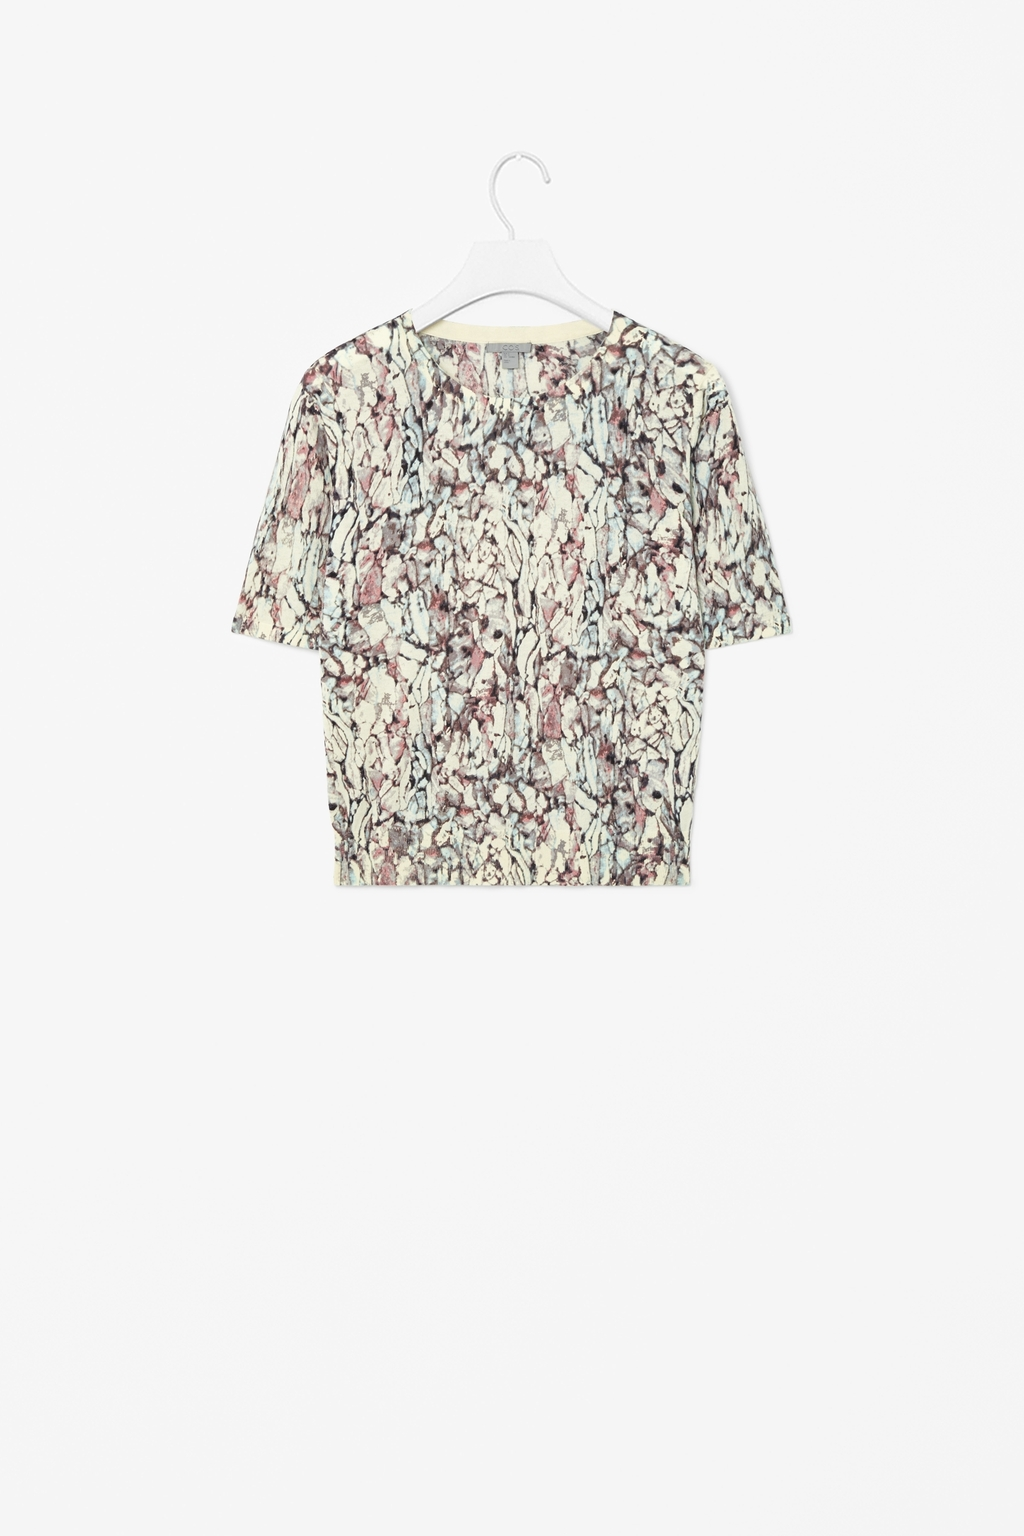 Printed Short Sleeved Top - neckline: round neck; style: t-shirt; predominant colour: stone; secondary colour: charcoal; occasions: casual; length: standard; fibres: cotton - 100%; fit: straight cut; sleeve length: short sleeve; sleeve style: standard; texture group: cotton feel fabrics; pattern type: fabric; pattern size: standard; pattern: patterned/print; season: s/s 2014